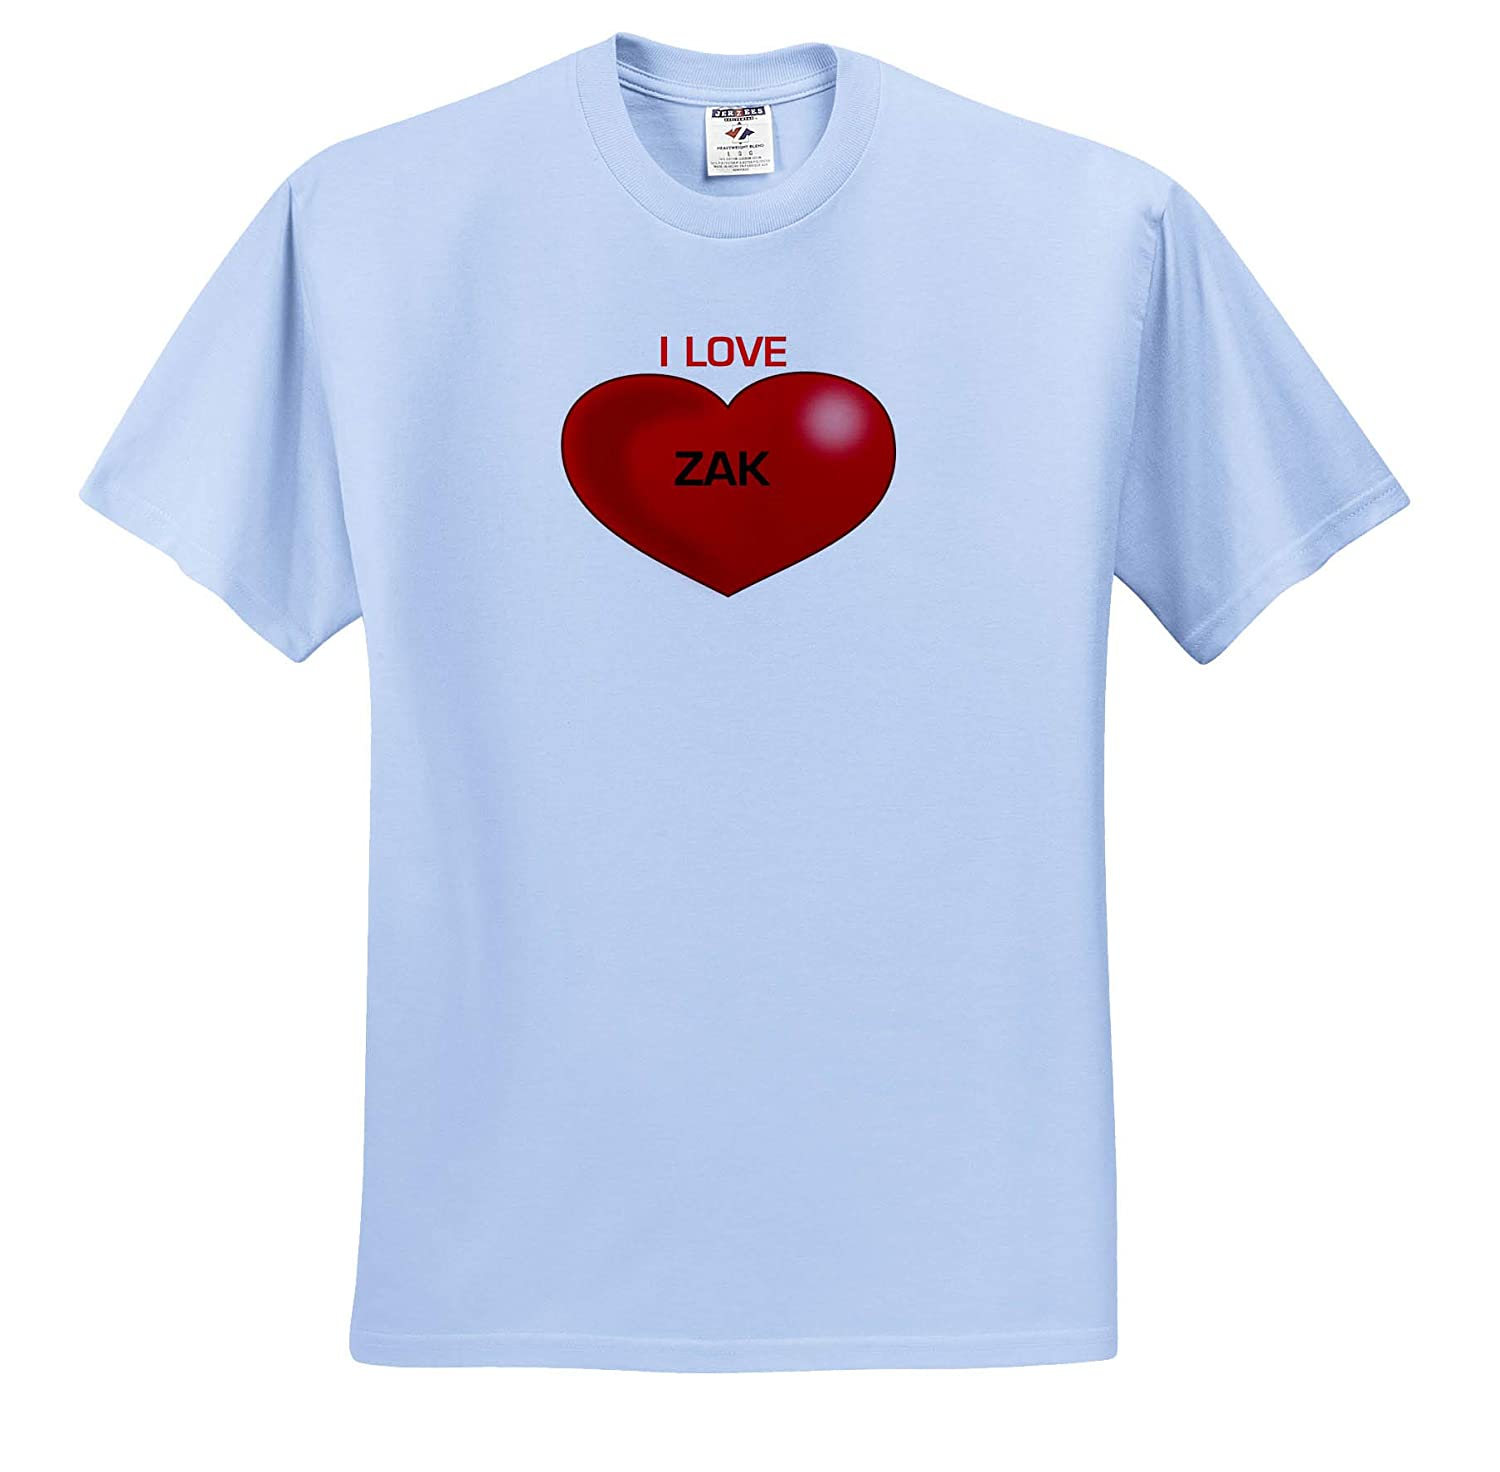 Love Hearts with Names 3dRose Lens Art by Florene T-Shirts Image of Zak I Love You with Big Red Heart